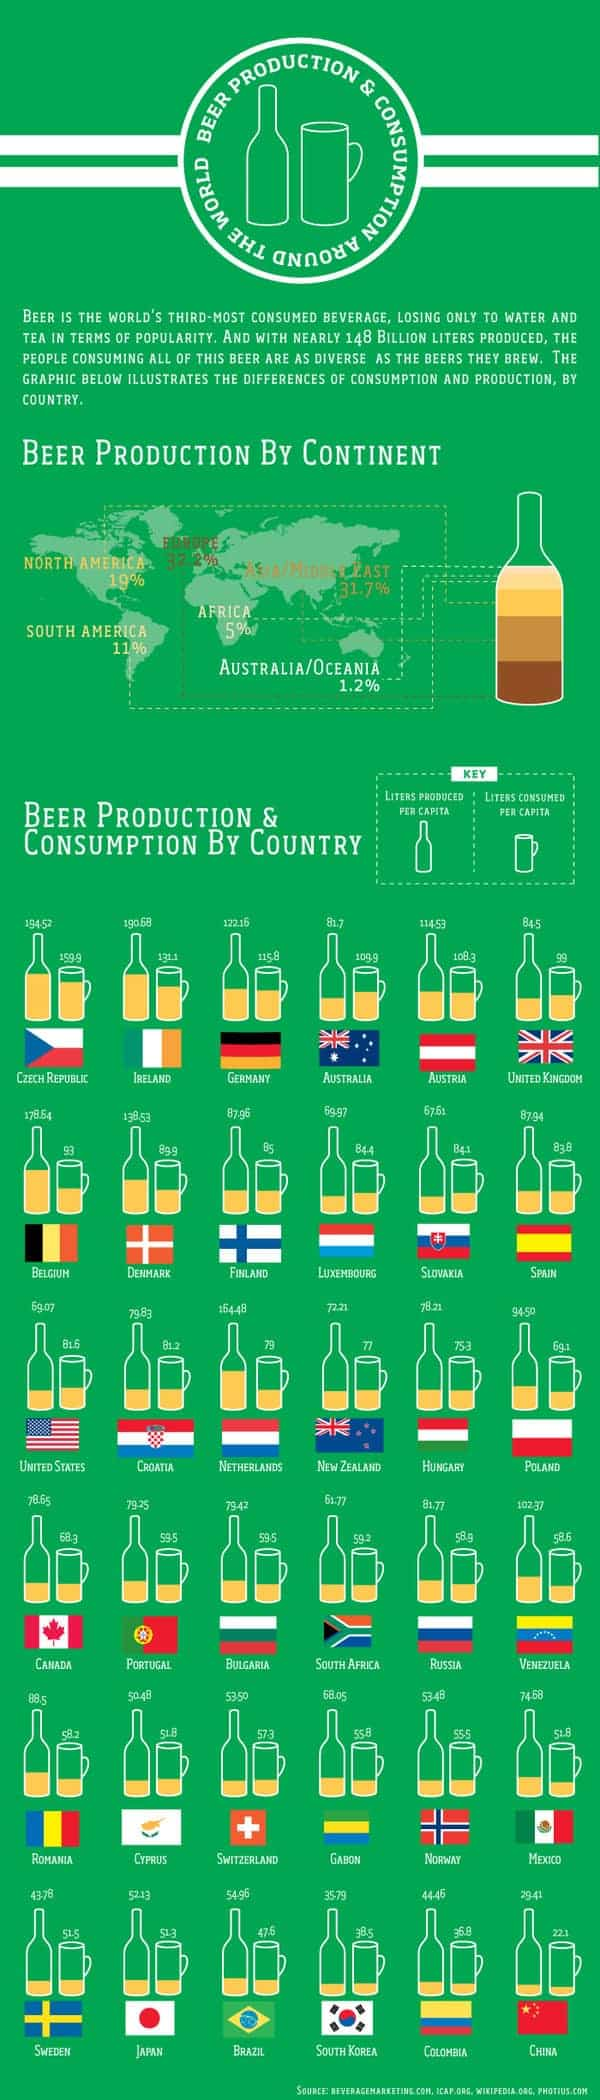 Global Beer Production and Consumption